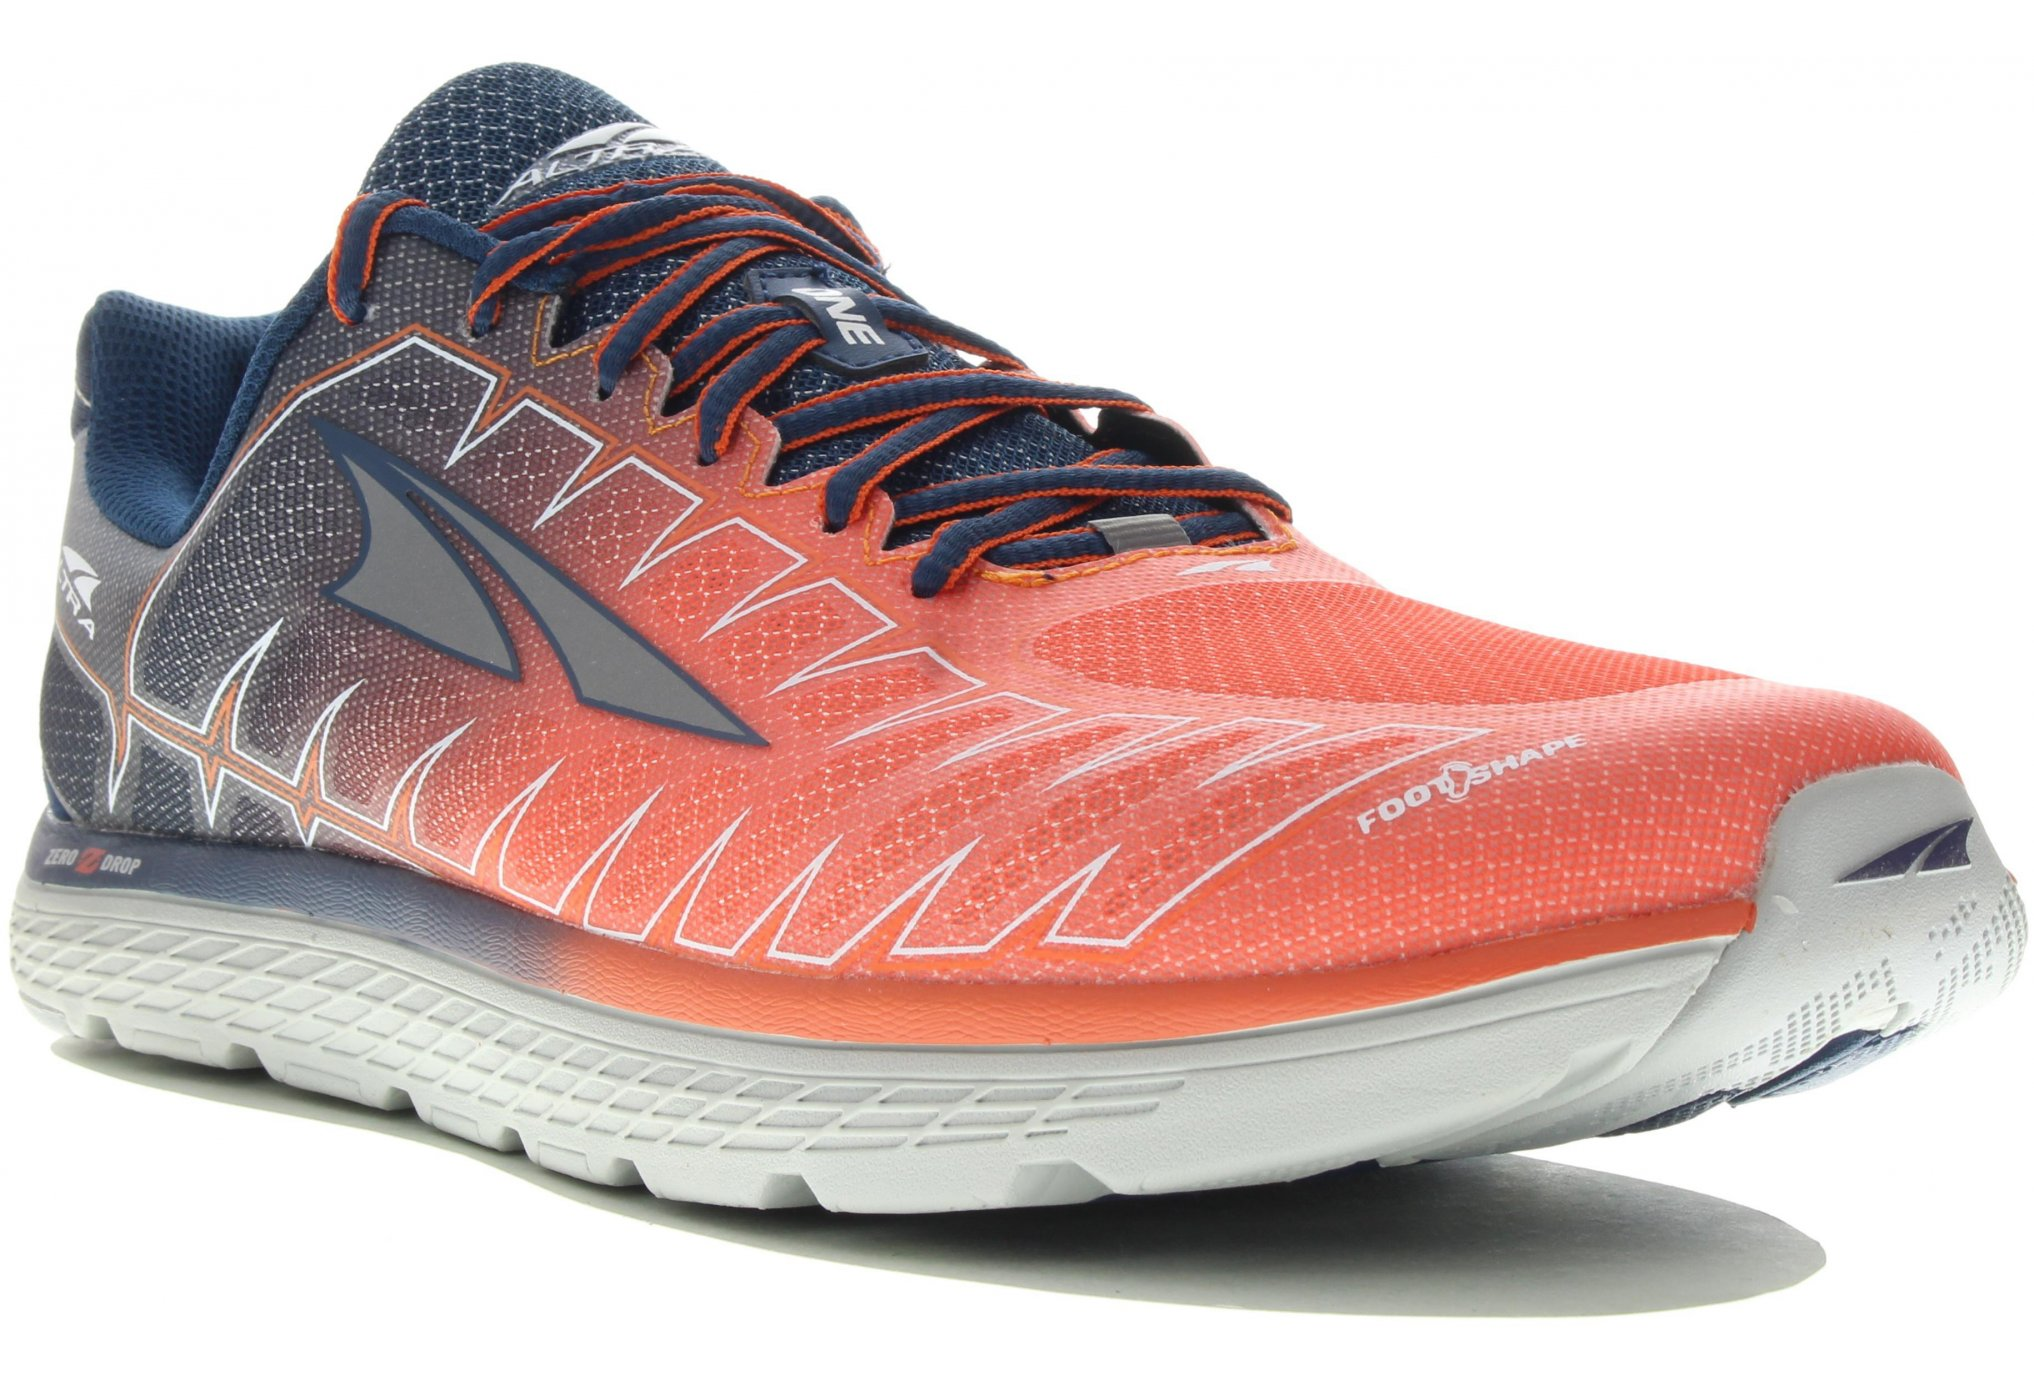 Altra One V3 déstockage running